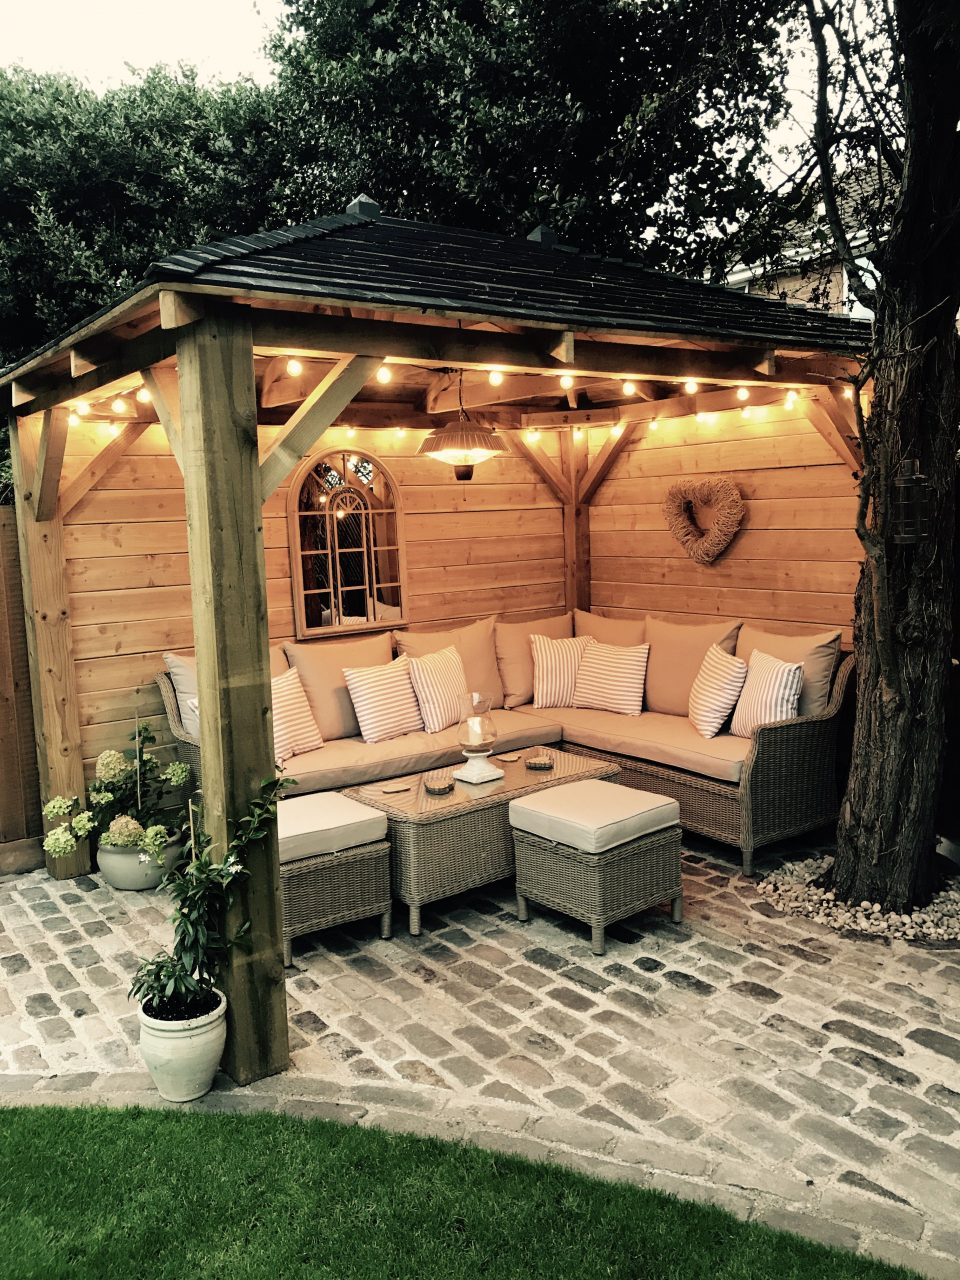 Homemade Wooden Gazebo Cobbles Garden Lights Outdoor Sofa